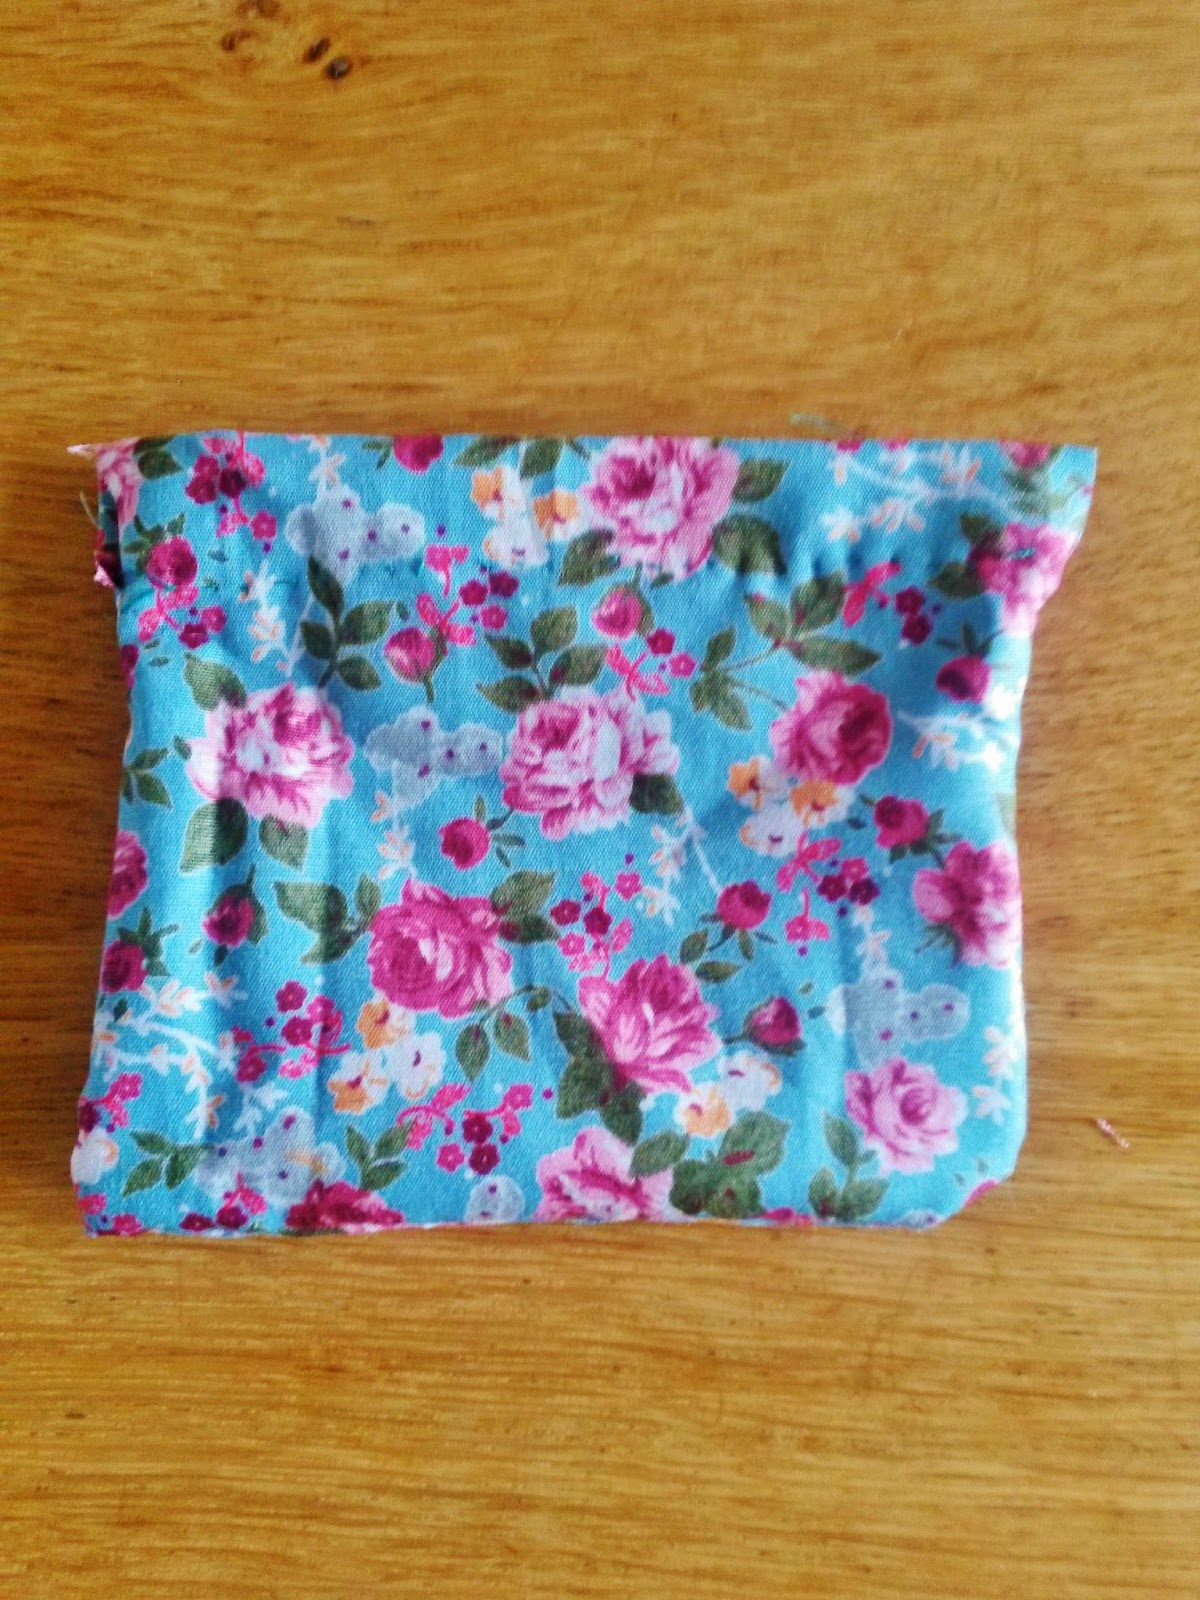 Sewing mini bag for lavender